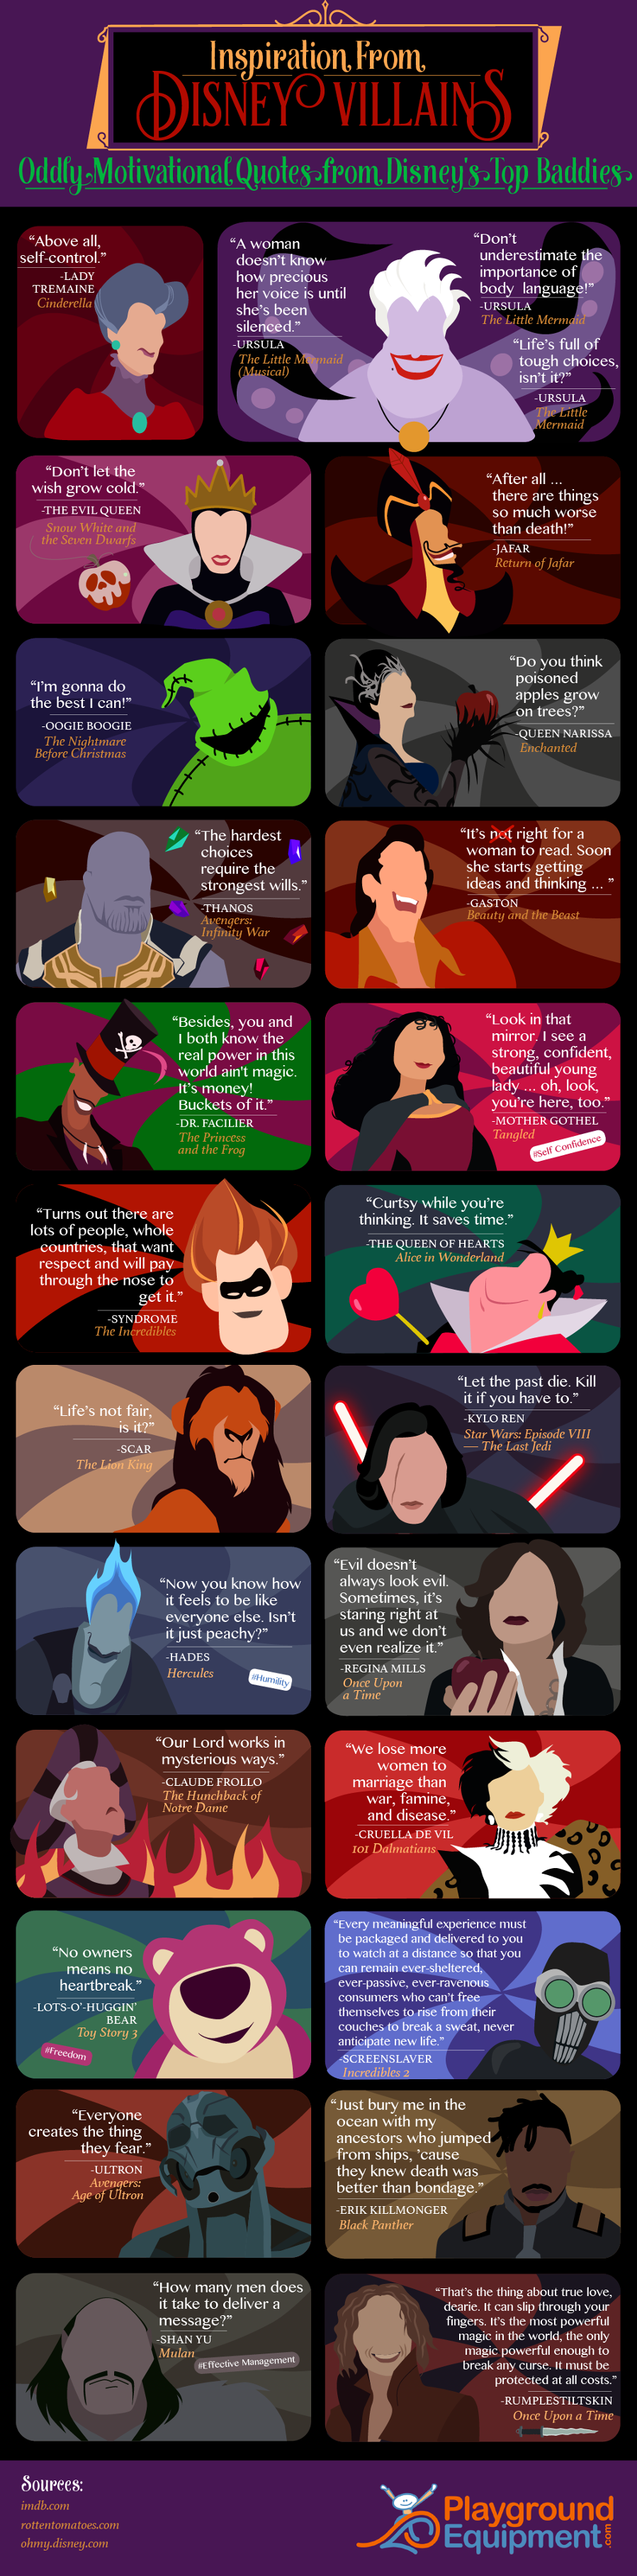 Inspiration from Disney Villains #infographic